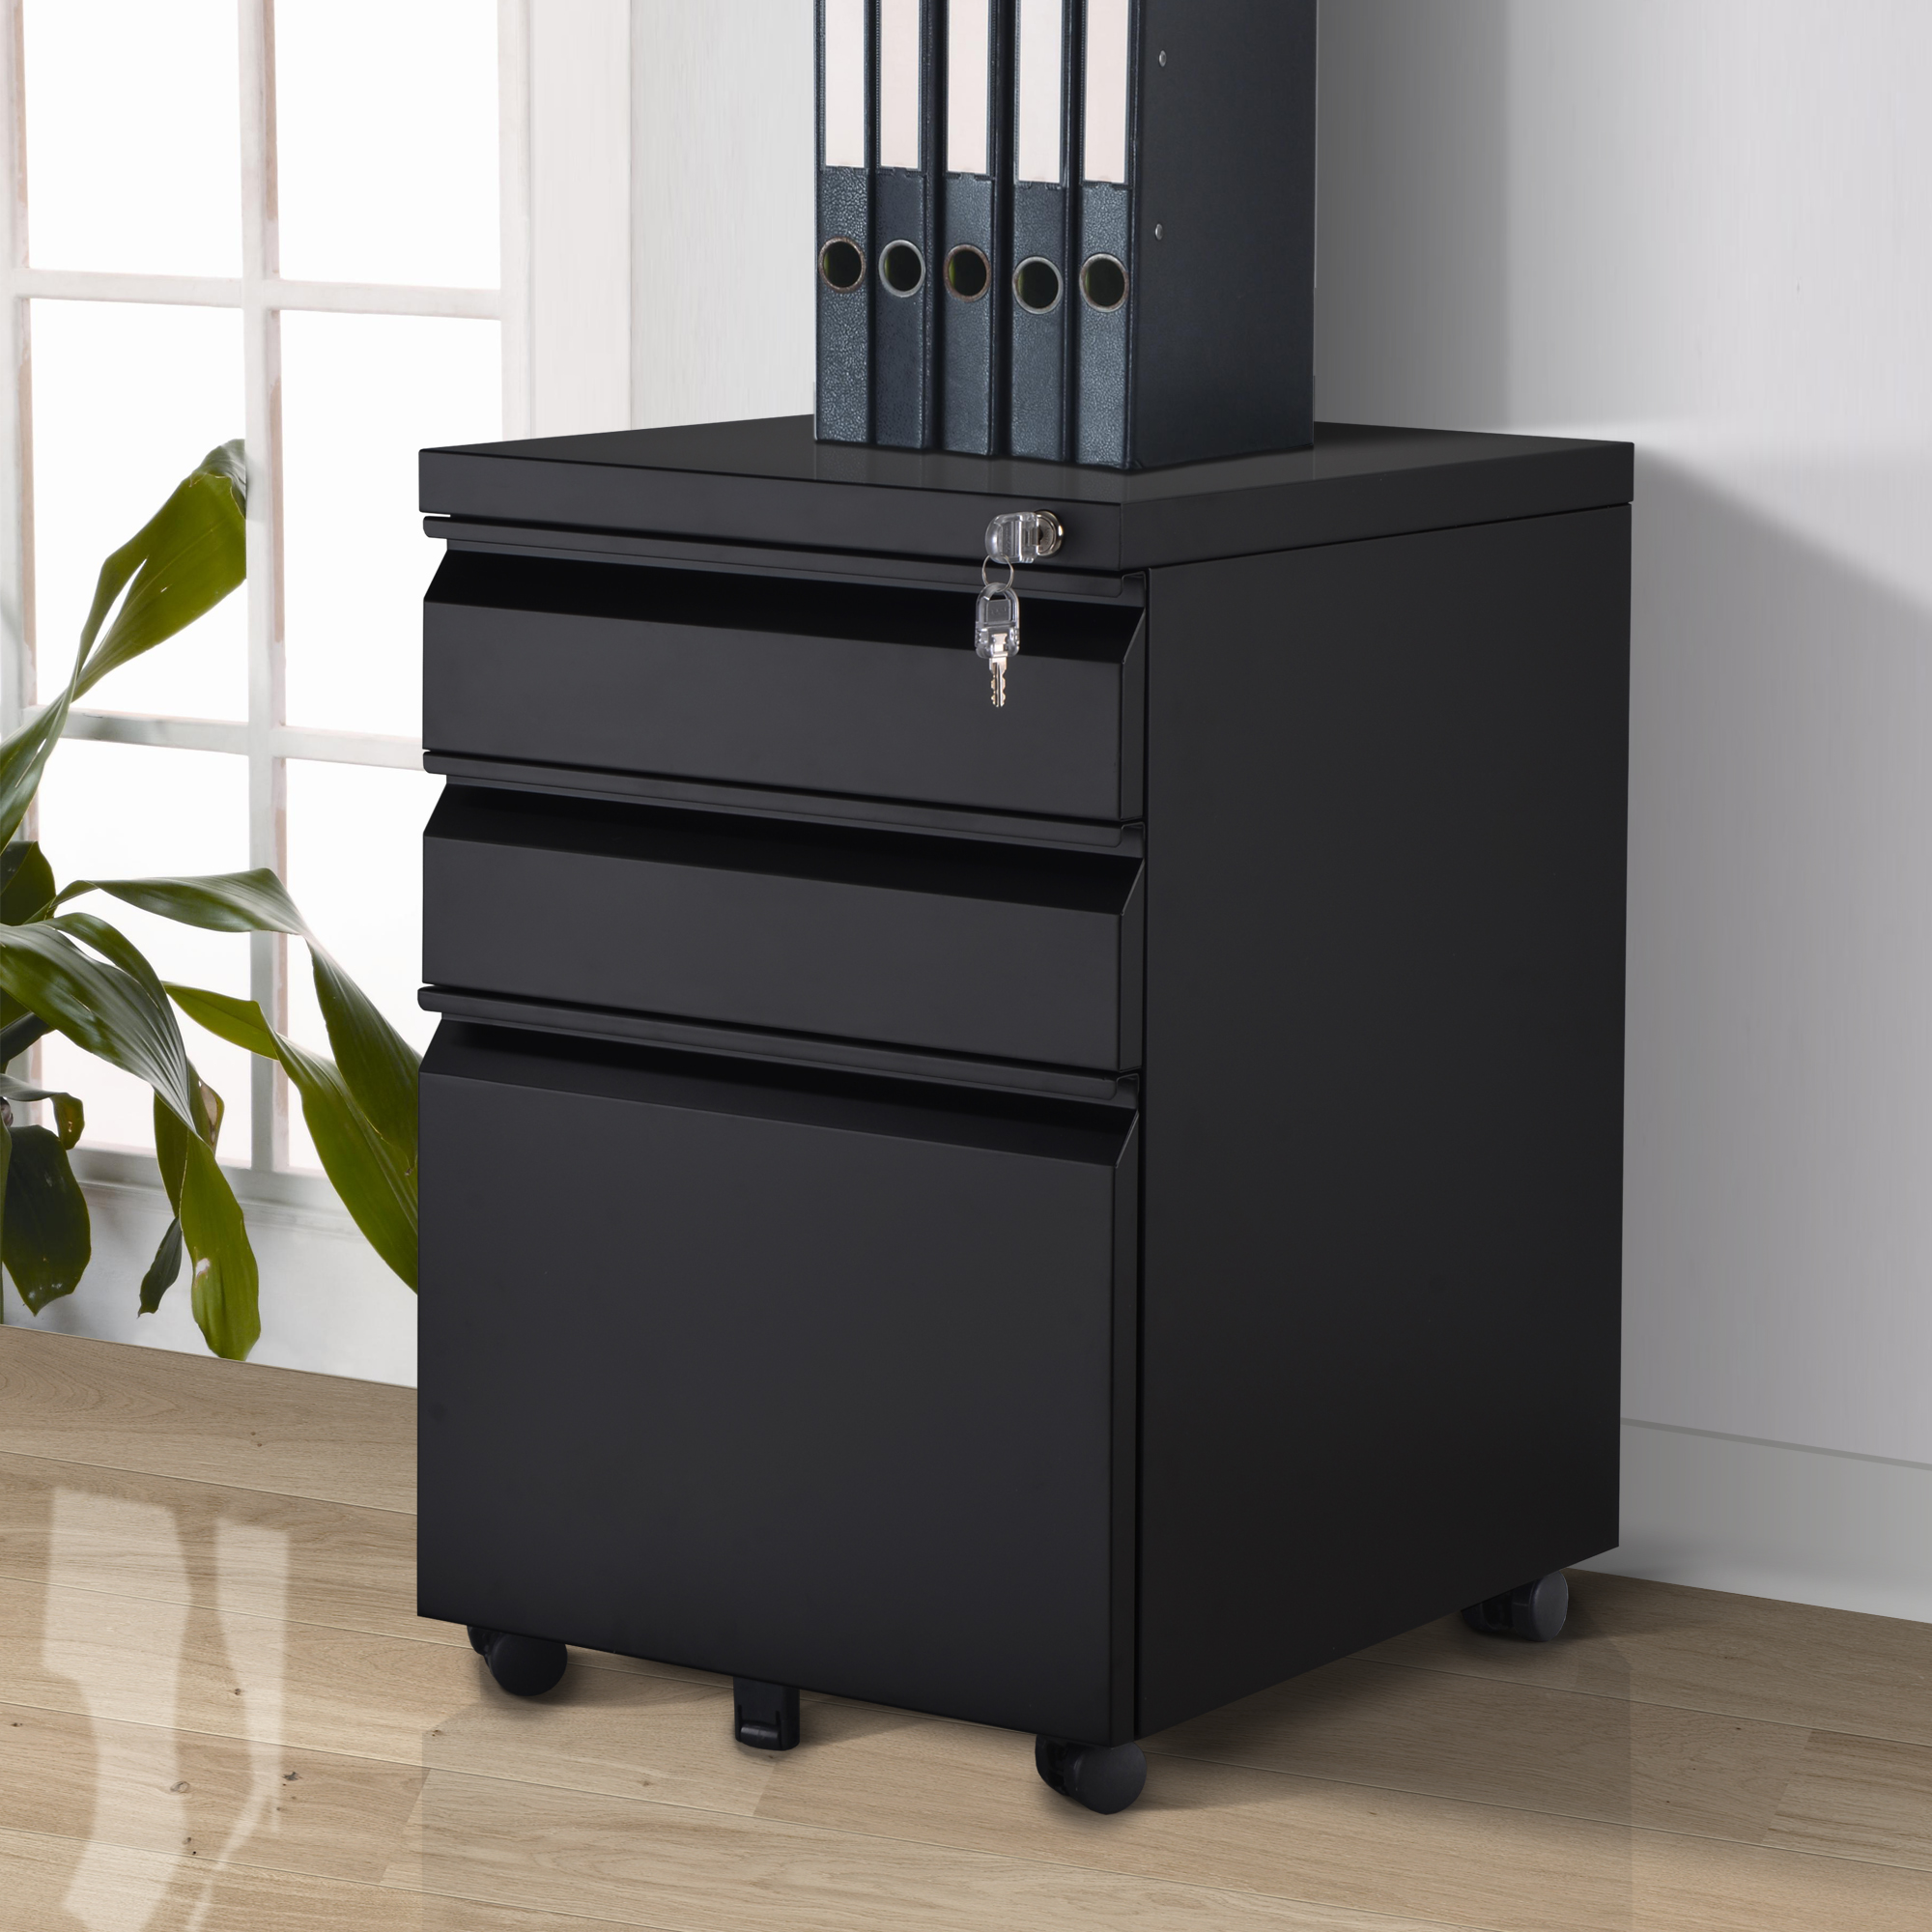 Classic Featured High Quality Steel Modern File Cabinets Large Space Home Furniture L39*D48*H60cm Office Filing Cabinet